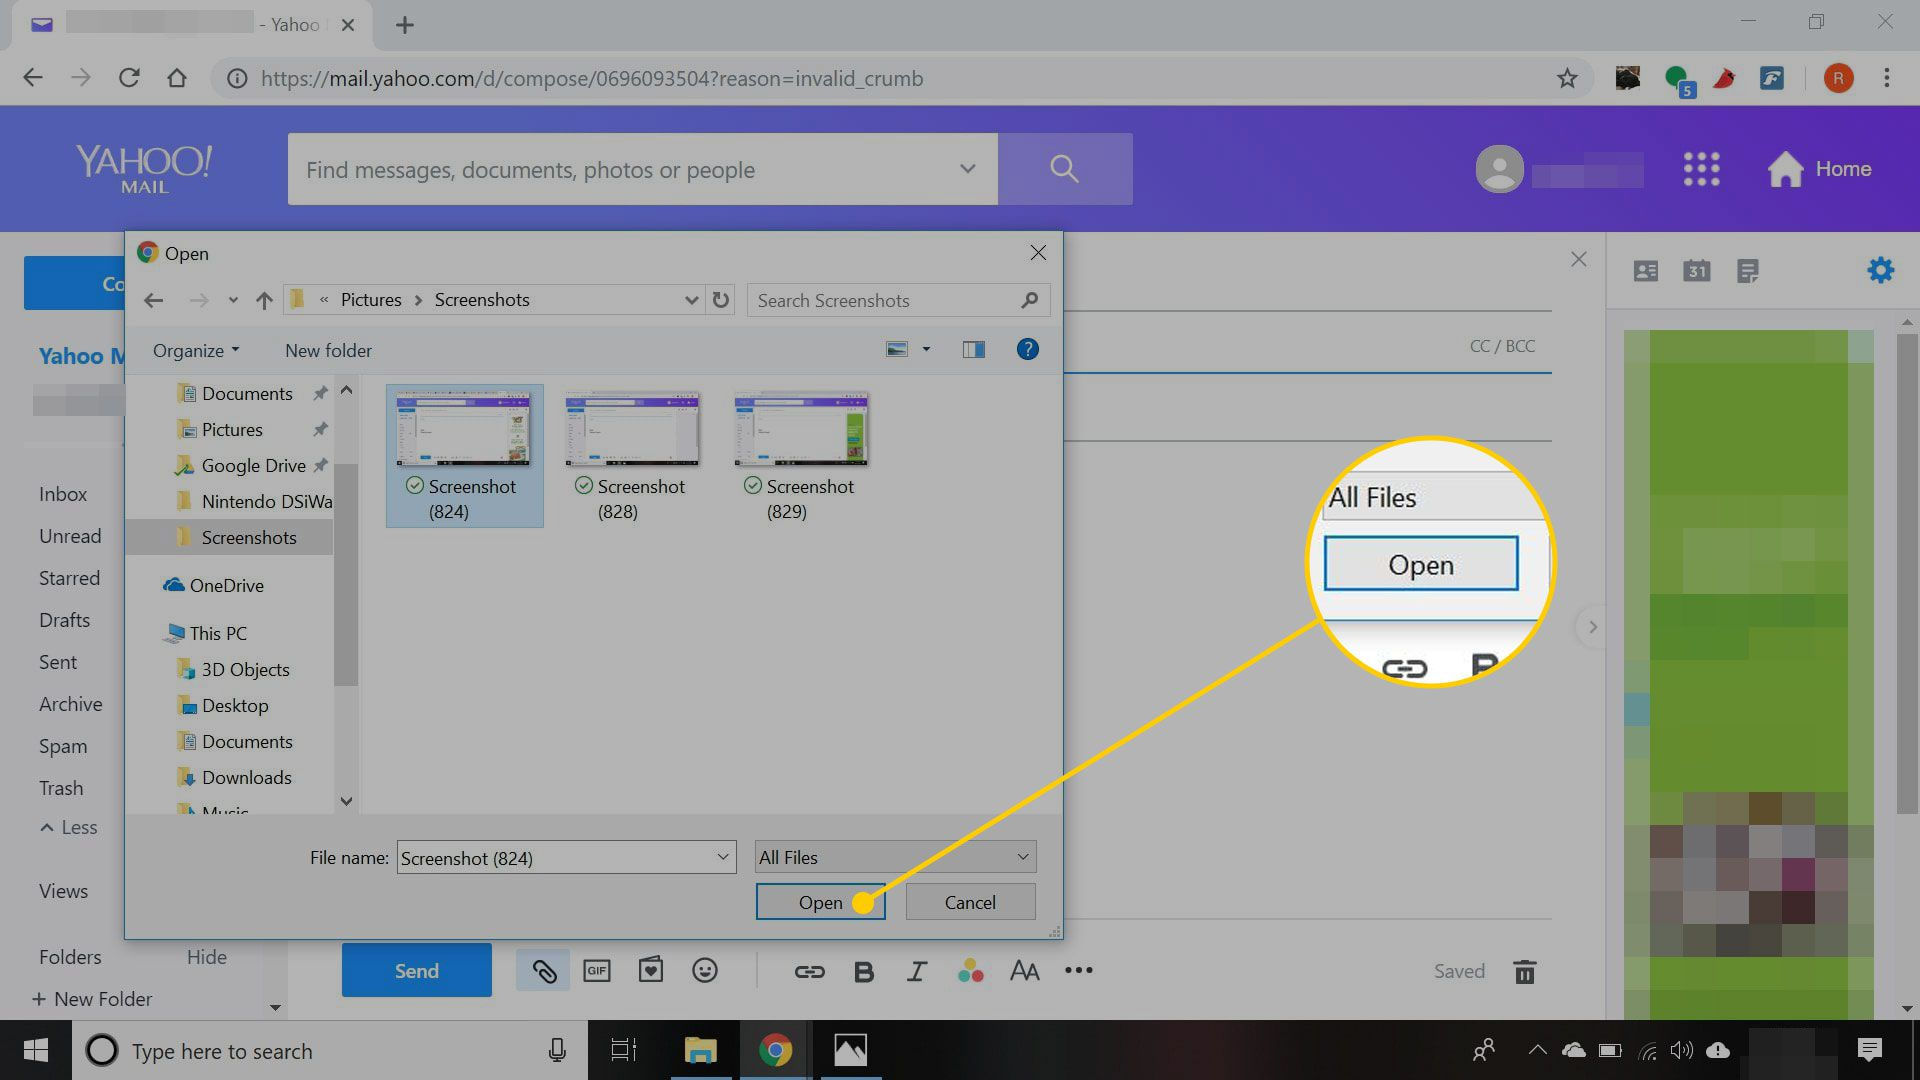 Attaching an image in Yahoo Mail. The Open button is highlighted